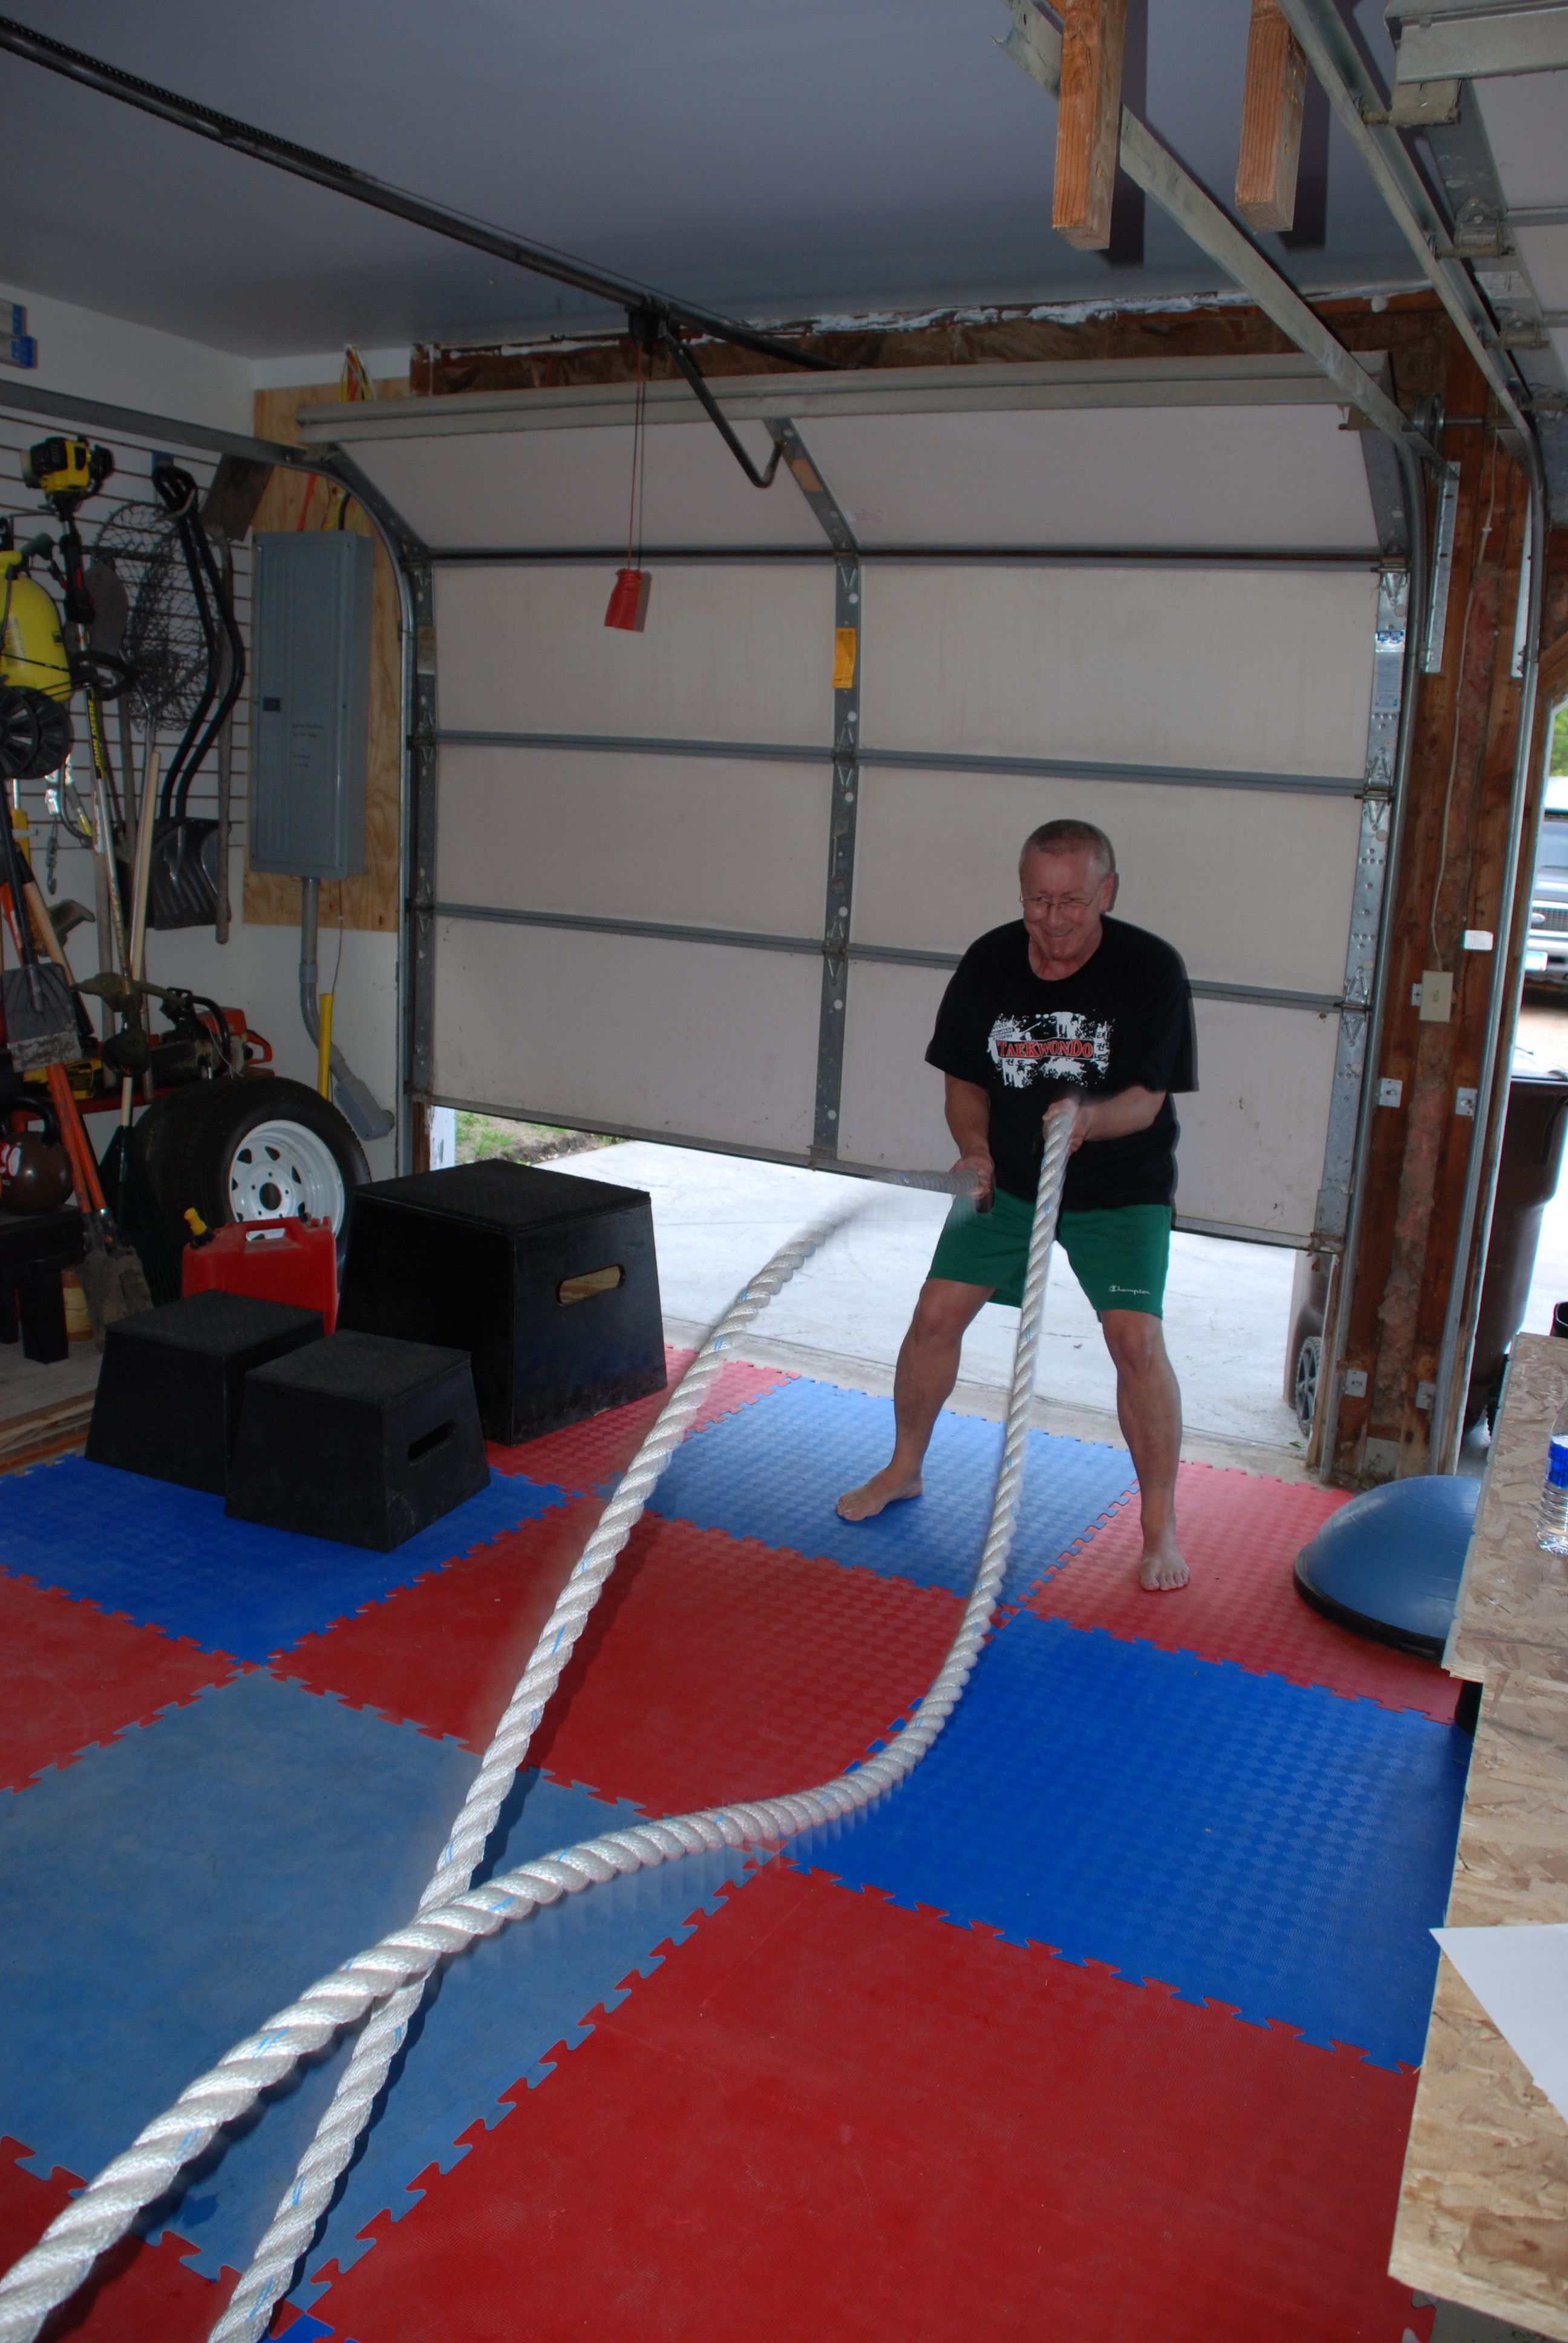 Mike on the ropes